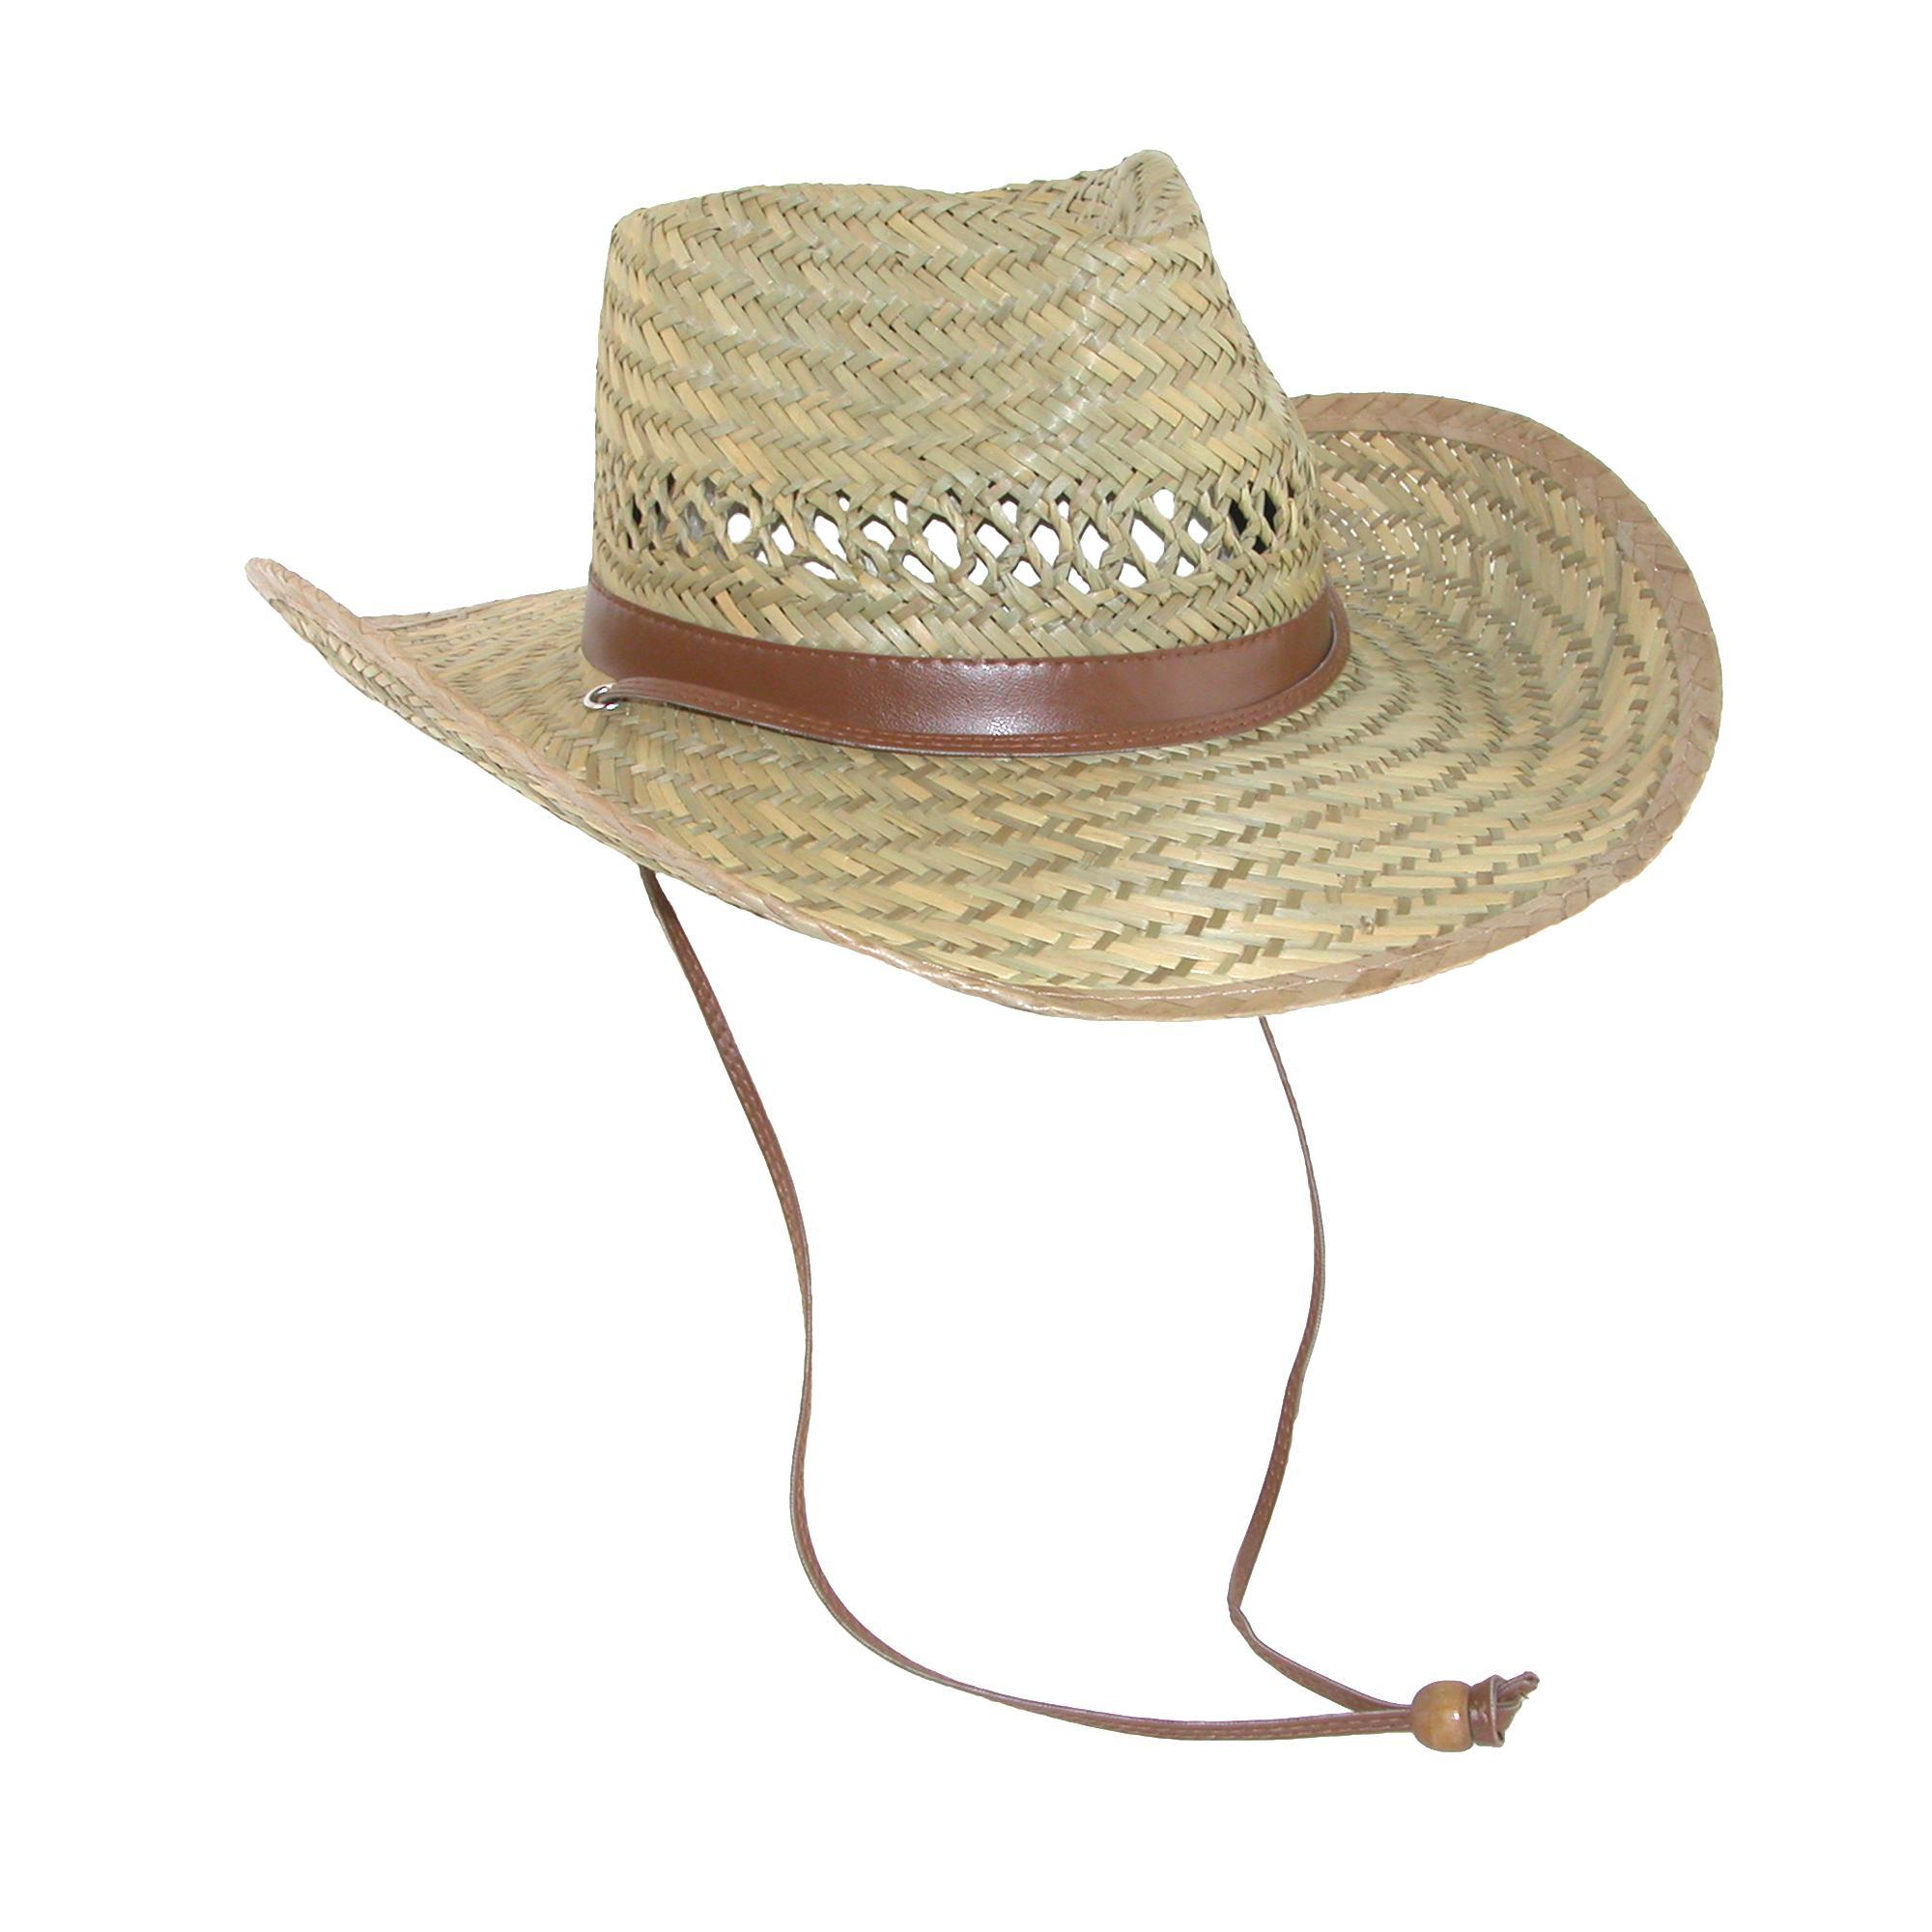 Details about New Dorfman Pacific Men s Rush Straw Lightweight Outback Hat  with Chin Cord 2fe55cb1a156